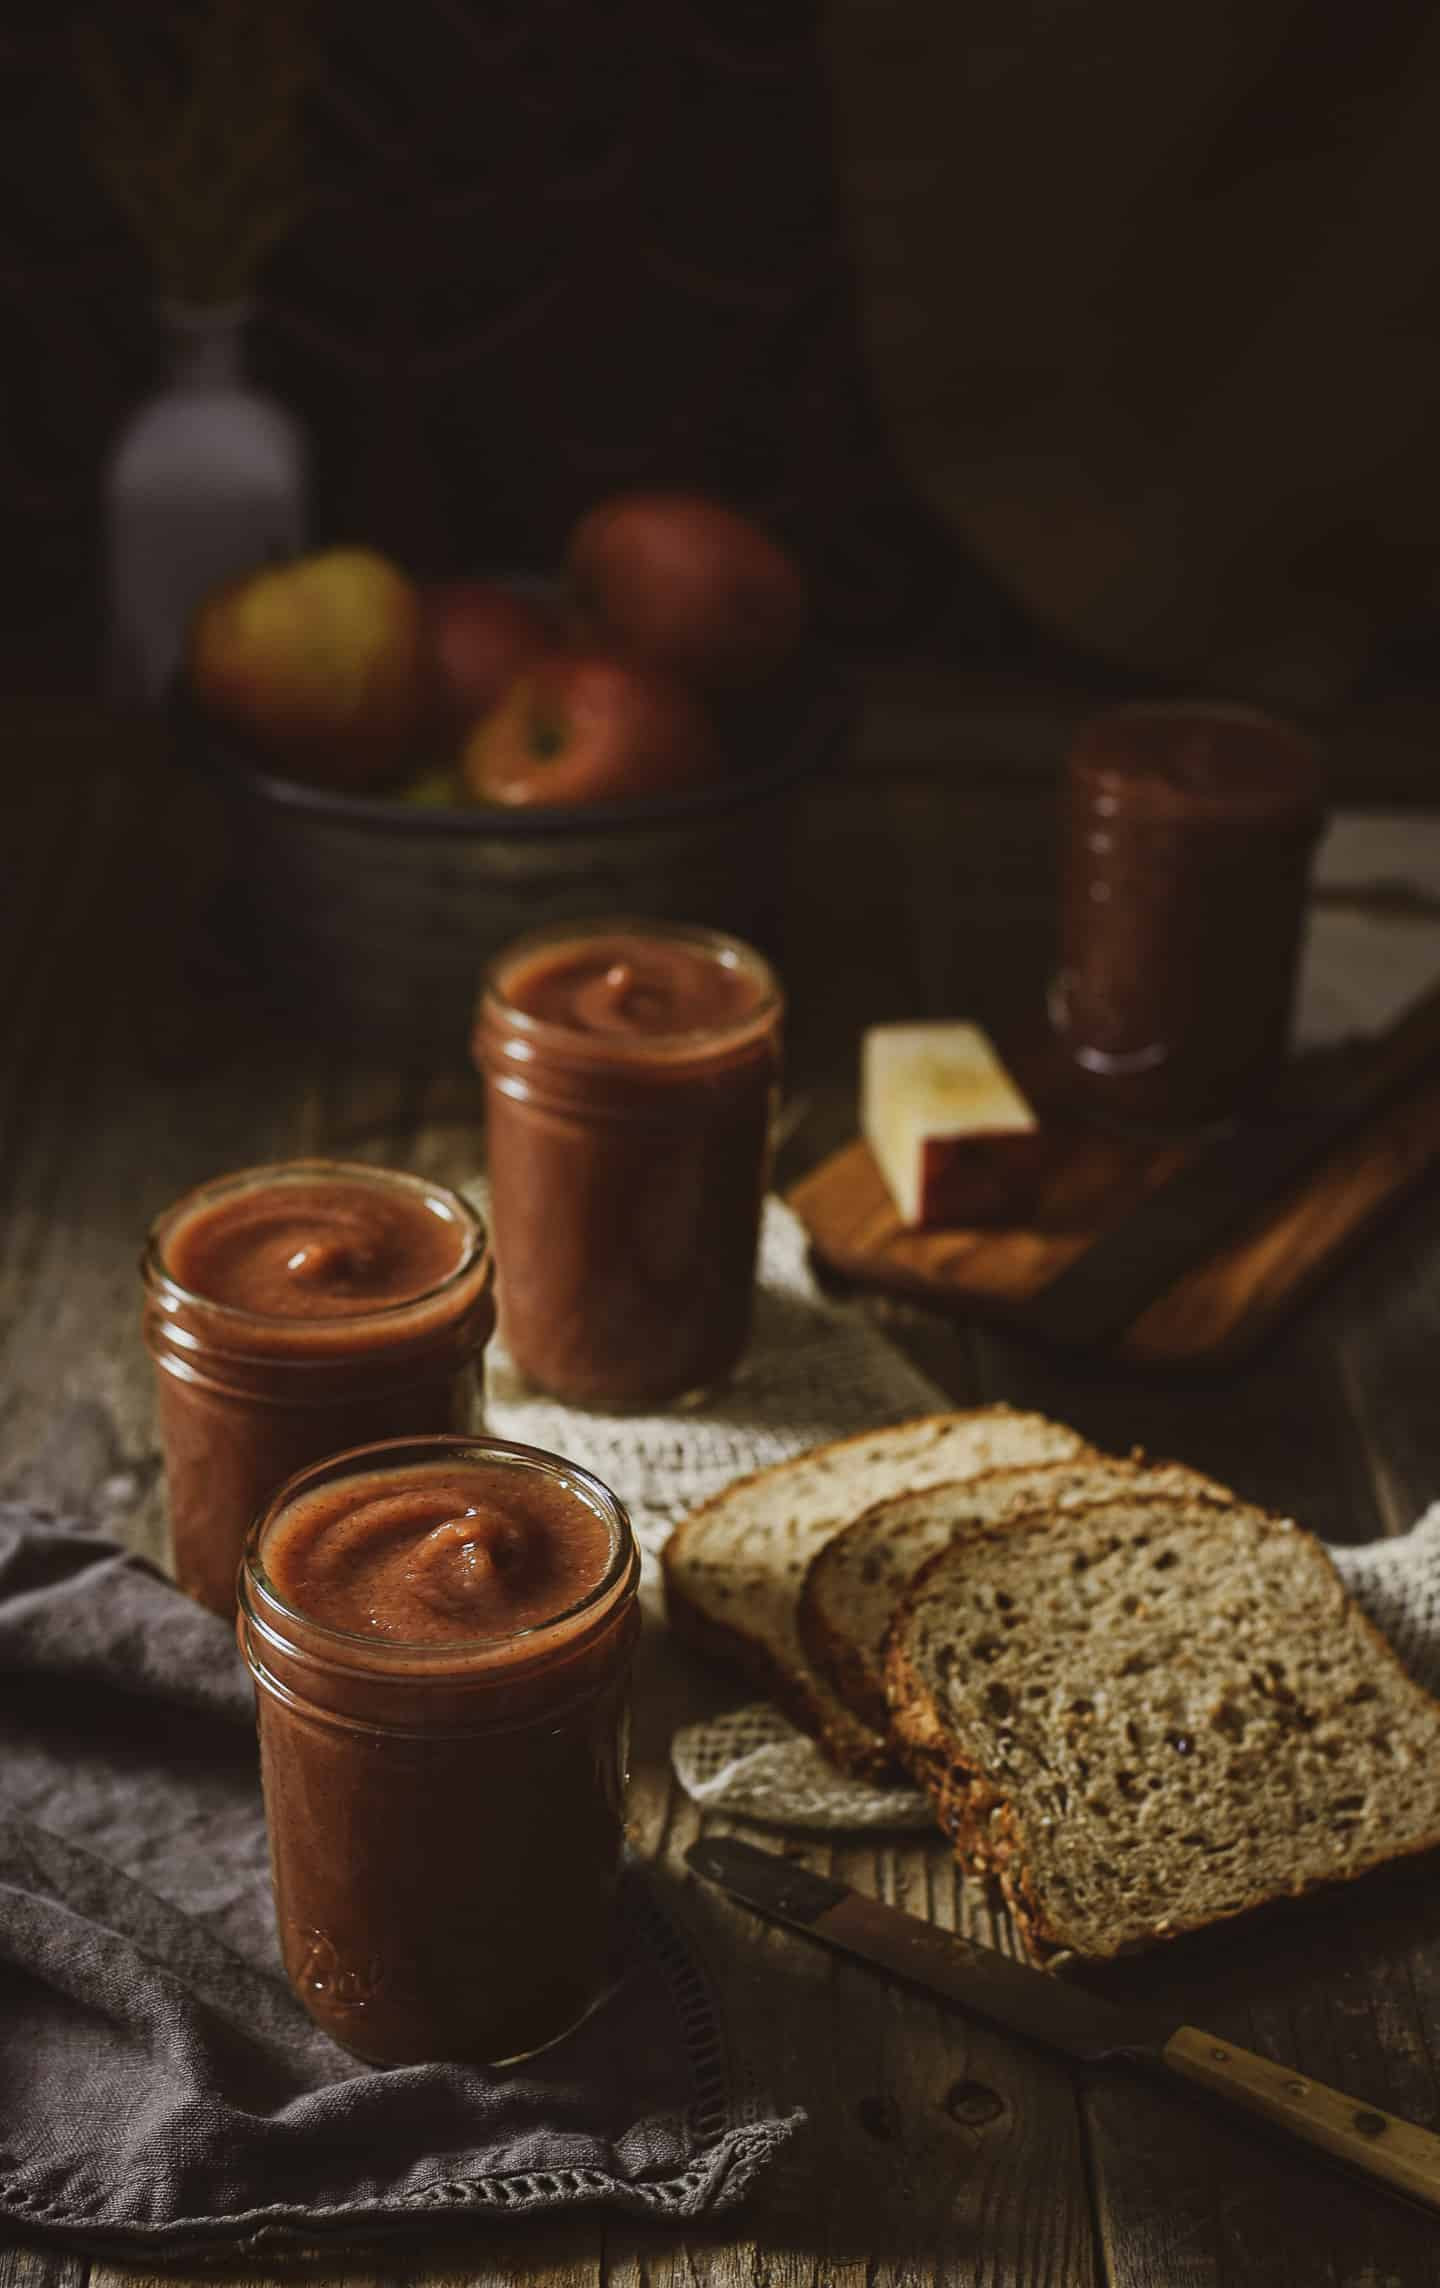 Instant Pot Apple Butter is so easy to make and ready in less than an hour using 5 simple ingredients. A deliciously warm spread, flavoring, or filling. You will never again want to buy apple butter at the store!